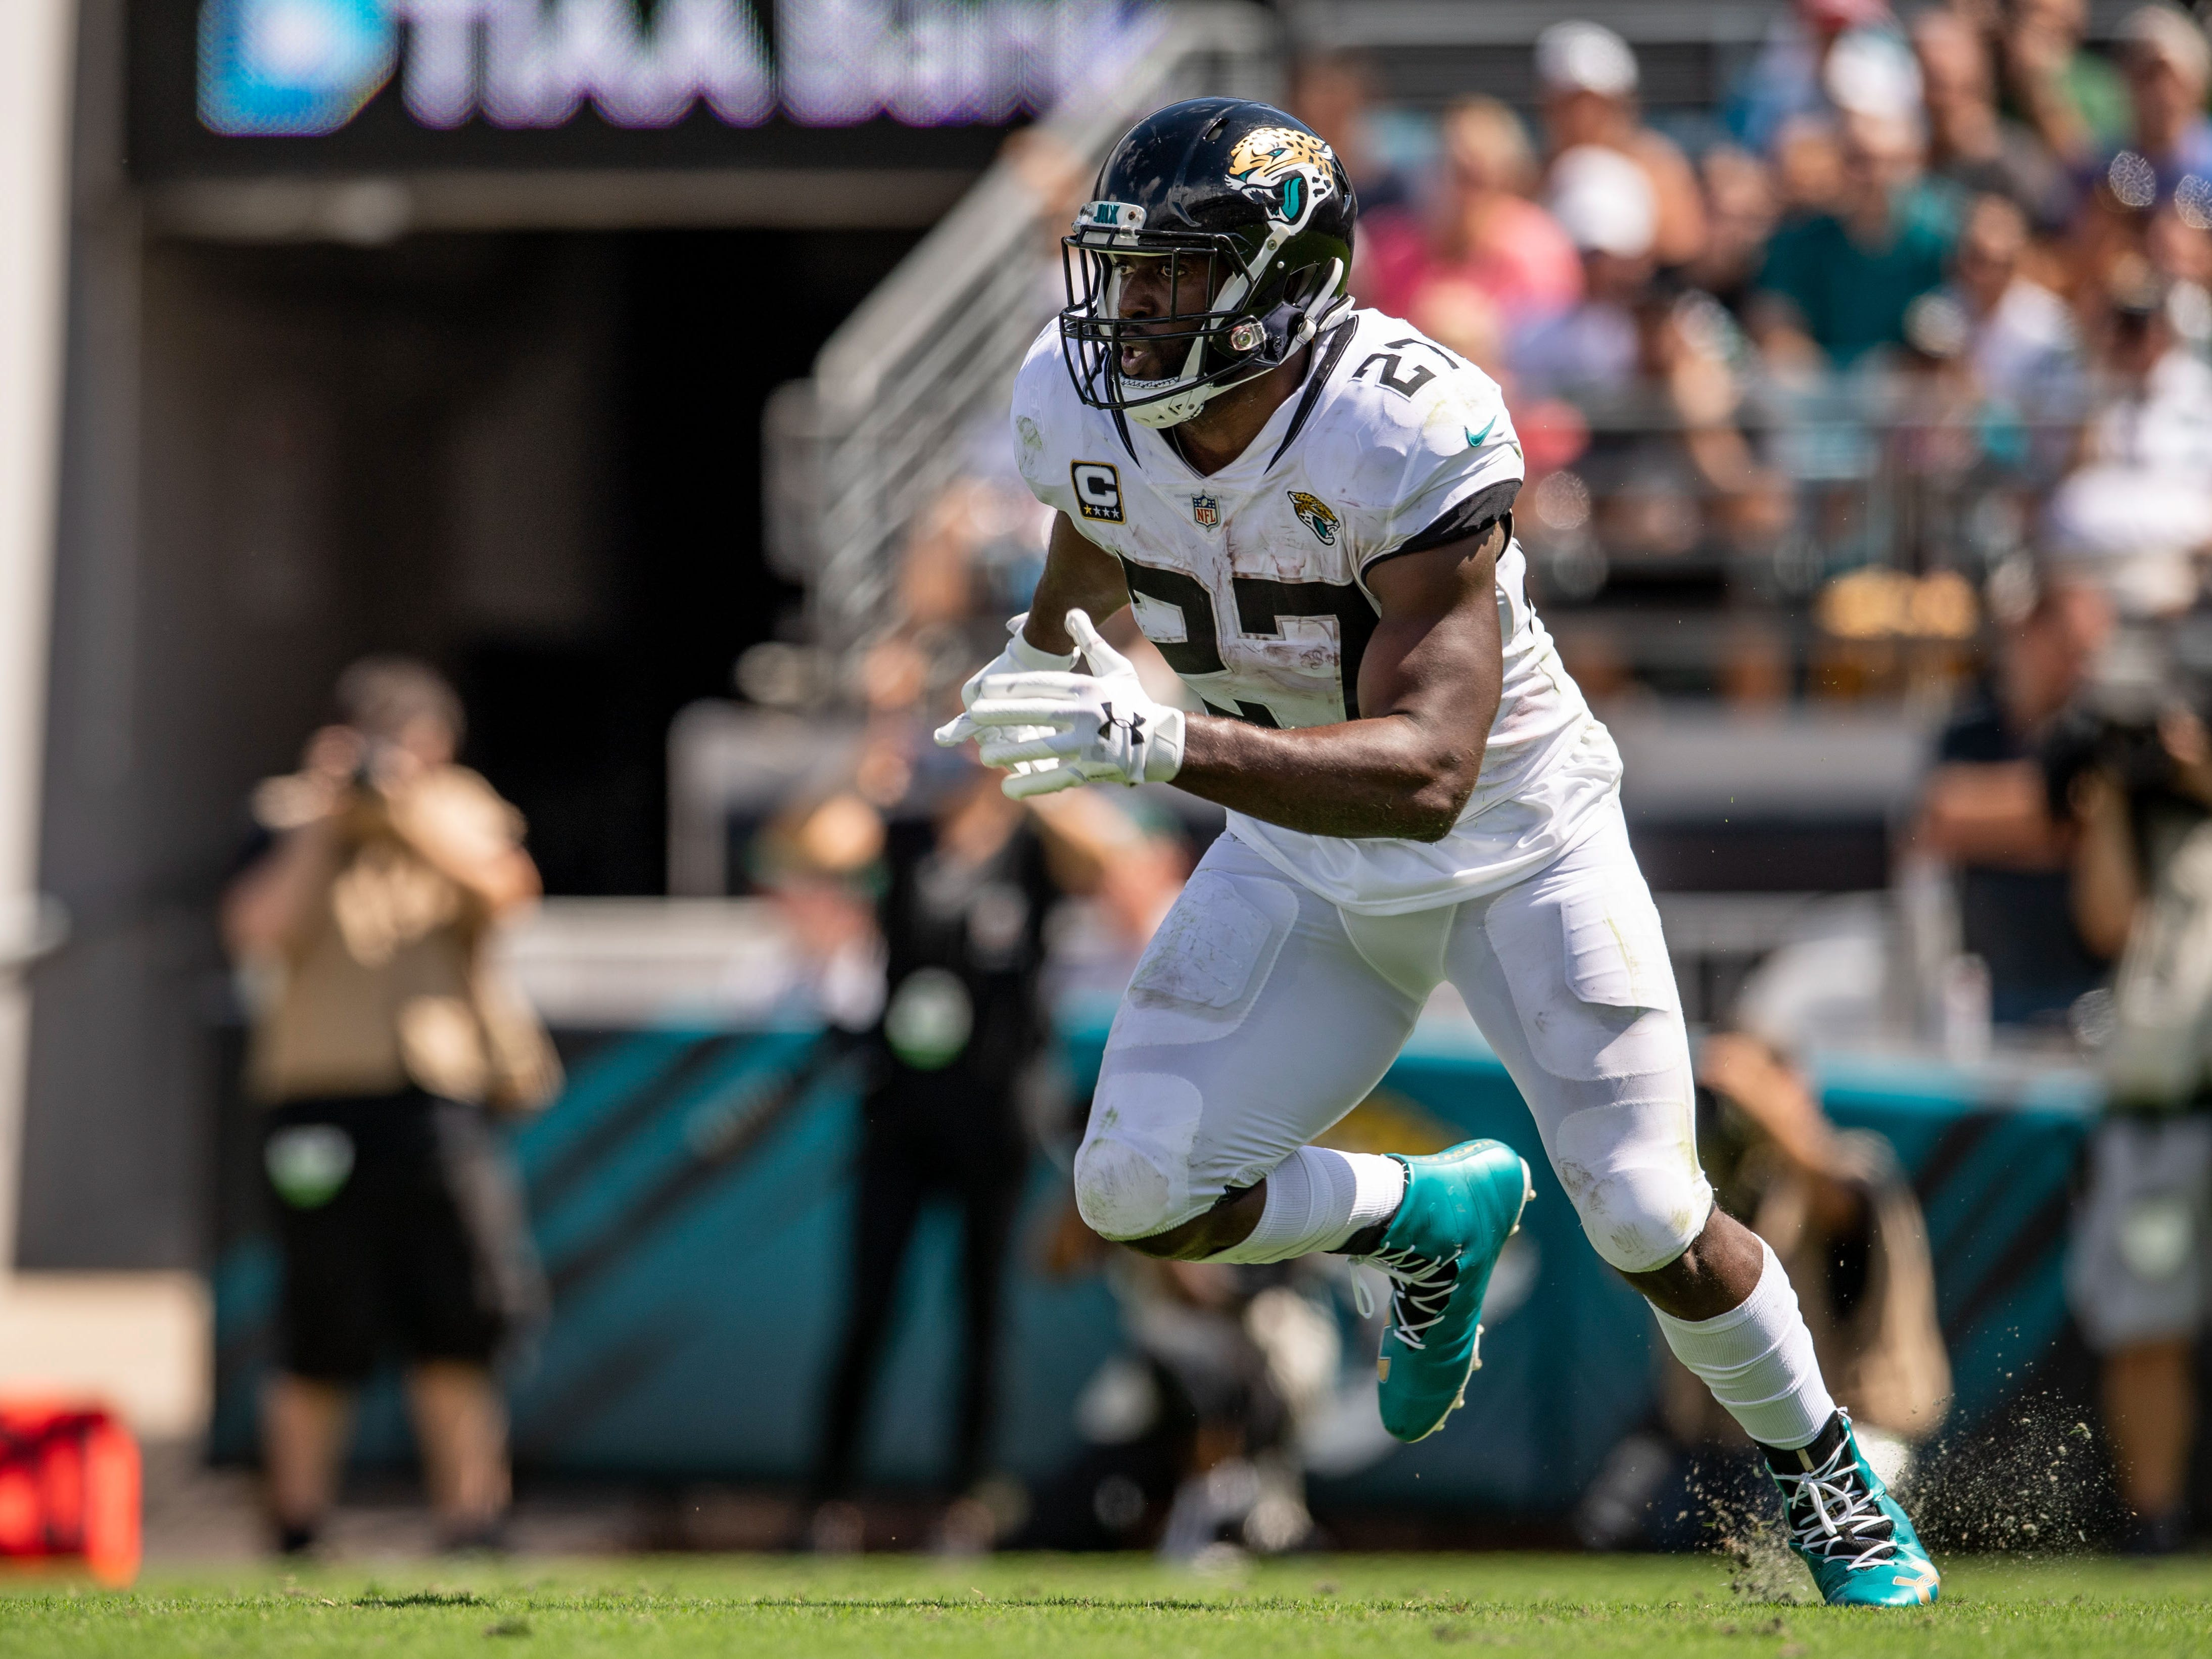 22. Jaguars (24): Treat — star RB Leonard Fournette may be back following Week 9 bye, perhaps firing up a team that's little more than a dumpster fire now.